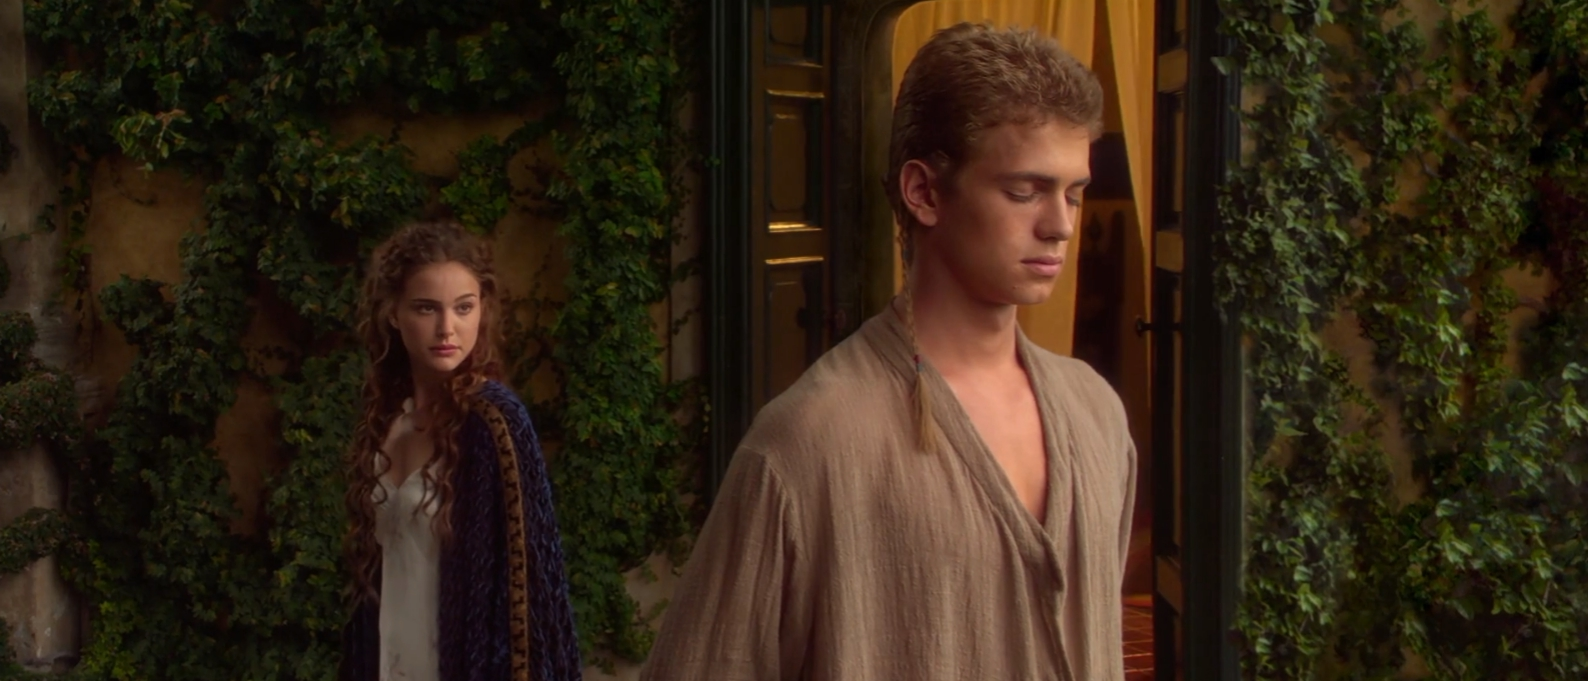 Star Wars: Episode II - Attack of the Clones Movie Review